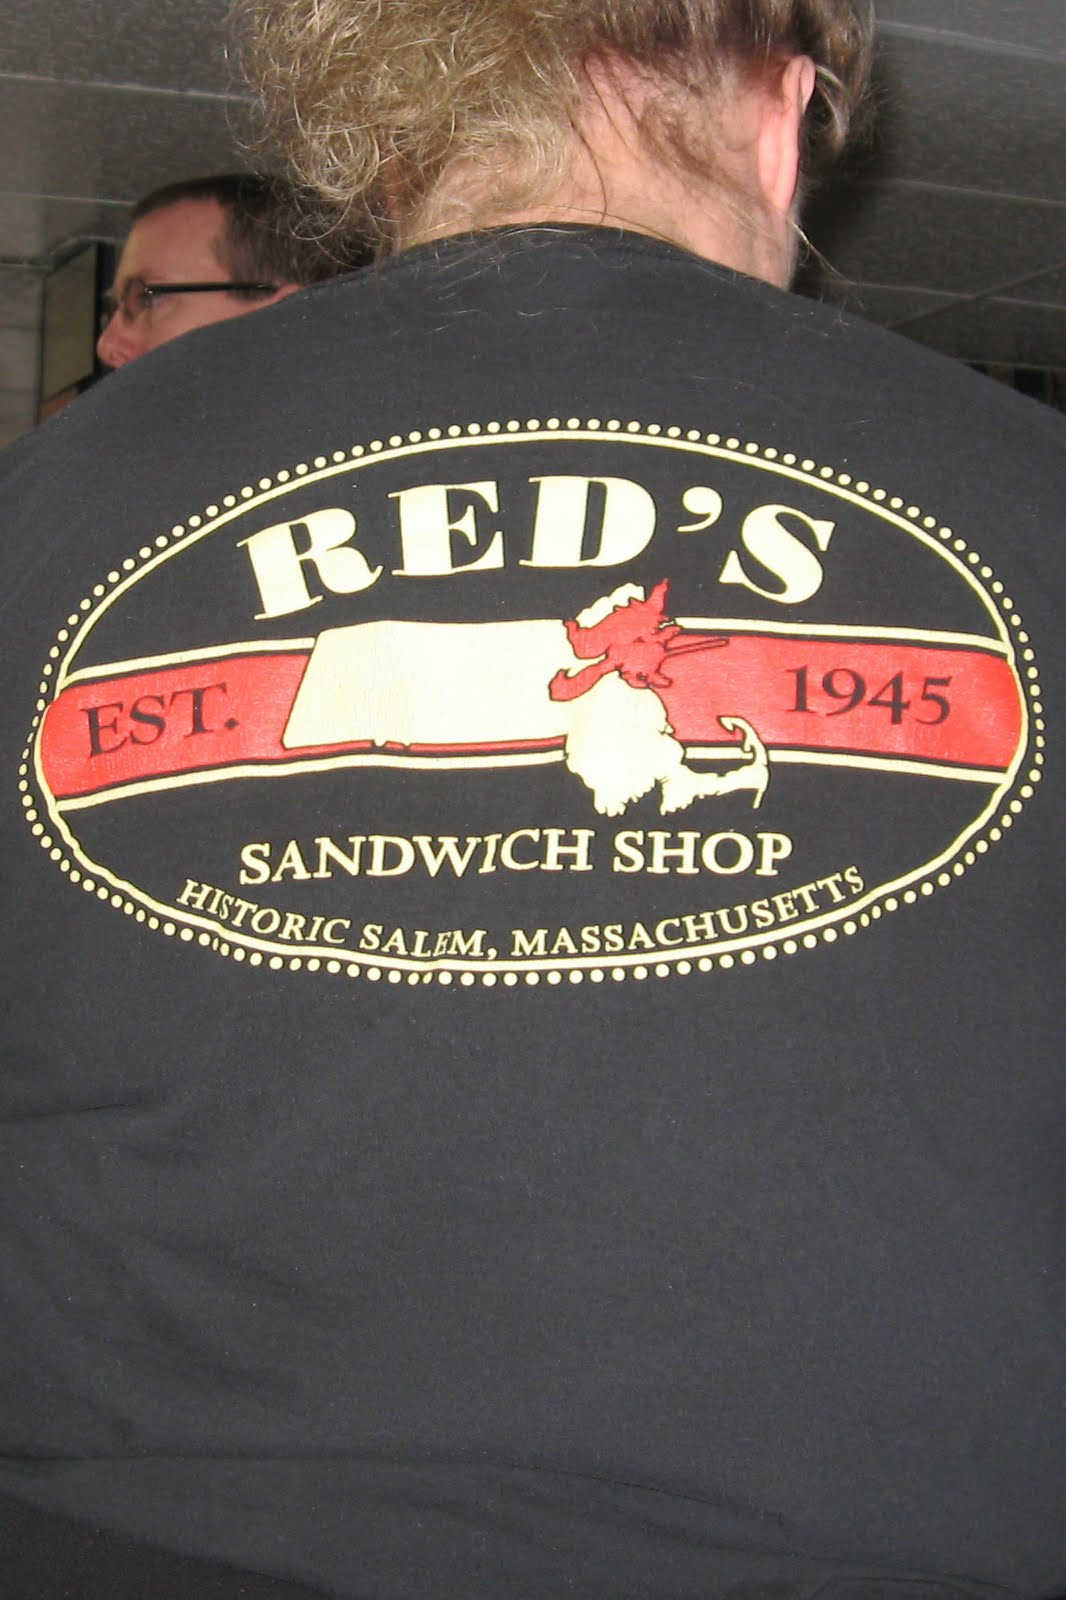 The Philosopher's Stone: Red's Sandwich Shop